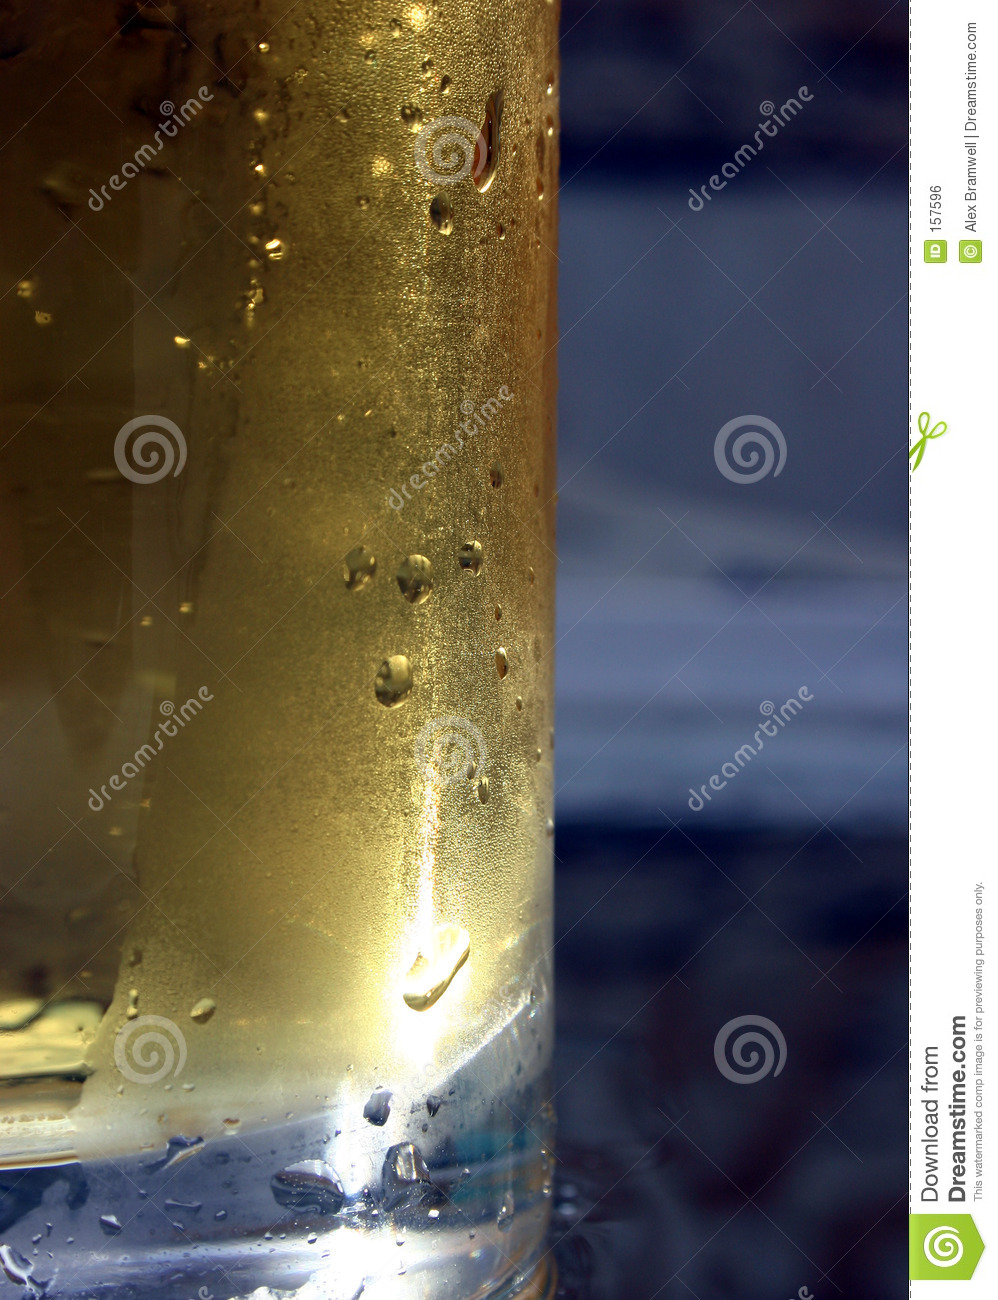 Download Cold One stock photo. Image of highball, full, chilled - 157596